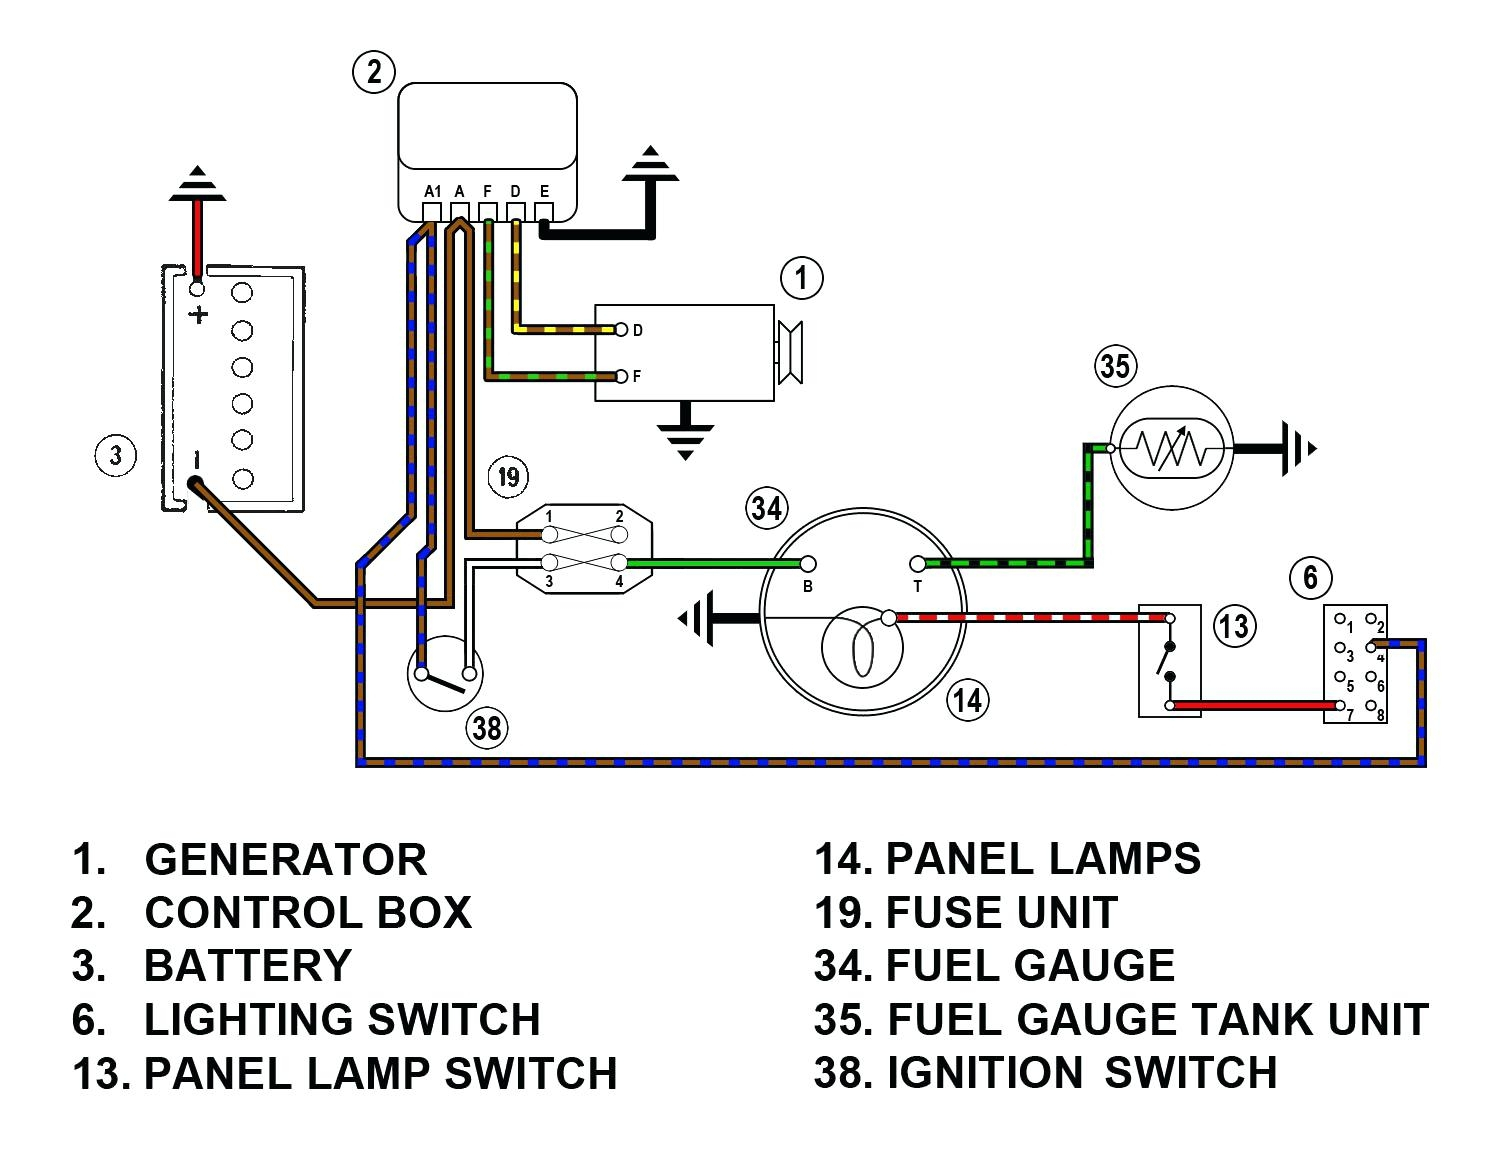 hight resolution of dump trailer hydraulic pump wiring diagram collection wiring diagram pics detail name dump trailer hydraulic download wiring diagram